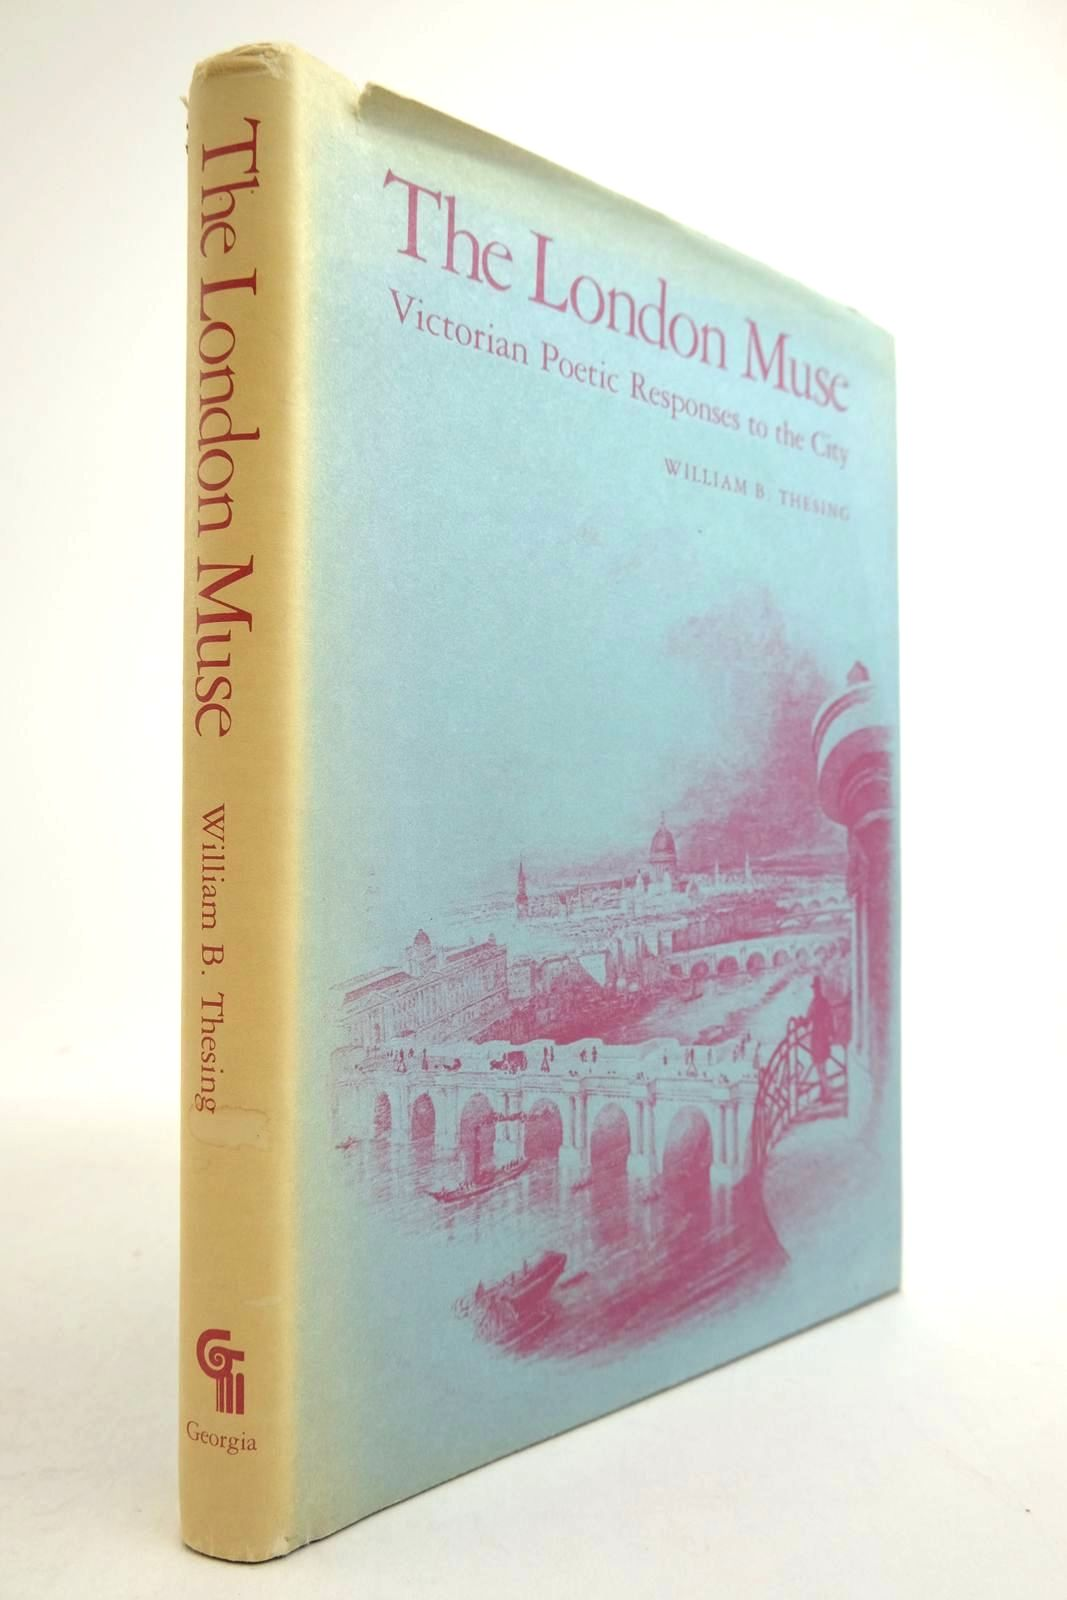 Photo of THE LONDON MUSE VICTORIAN POETIC RESPONSES TO THE CITY written by Thesing, William B. published by The University of Georgia Press (STOCK CODE: 2134290)  for sale by Stella & Rose's Books